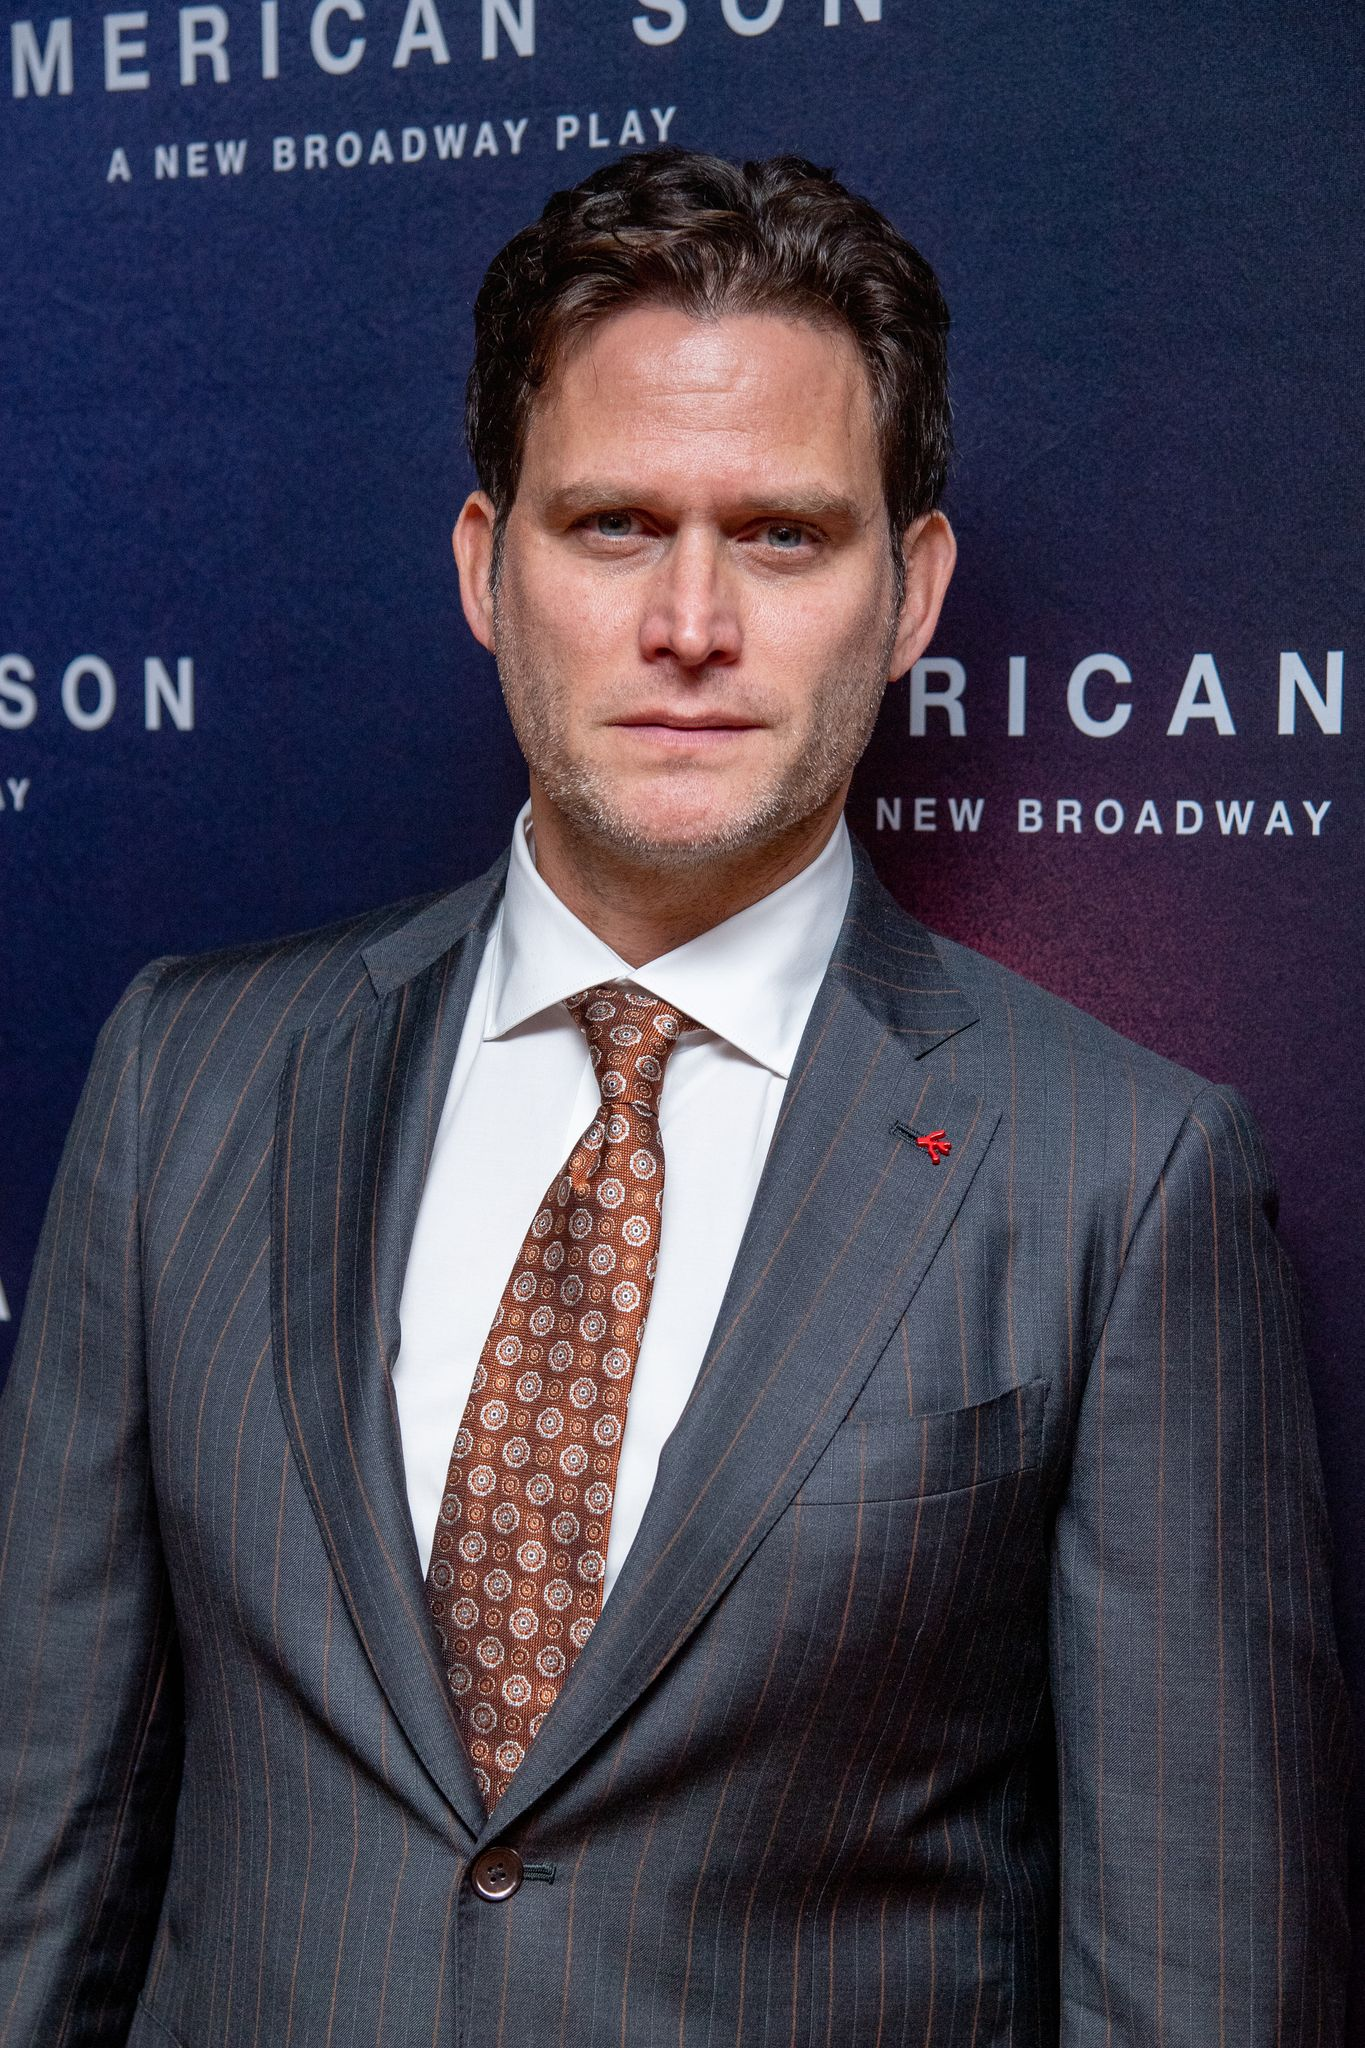 """Steven Pasquale at the opening night of """"American Son"""" in 2018 in New York City 